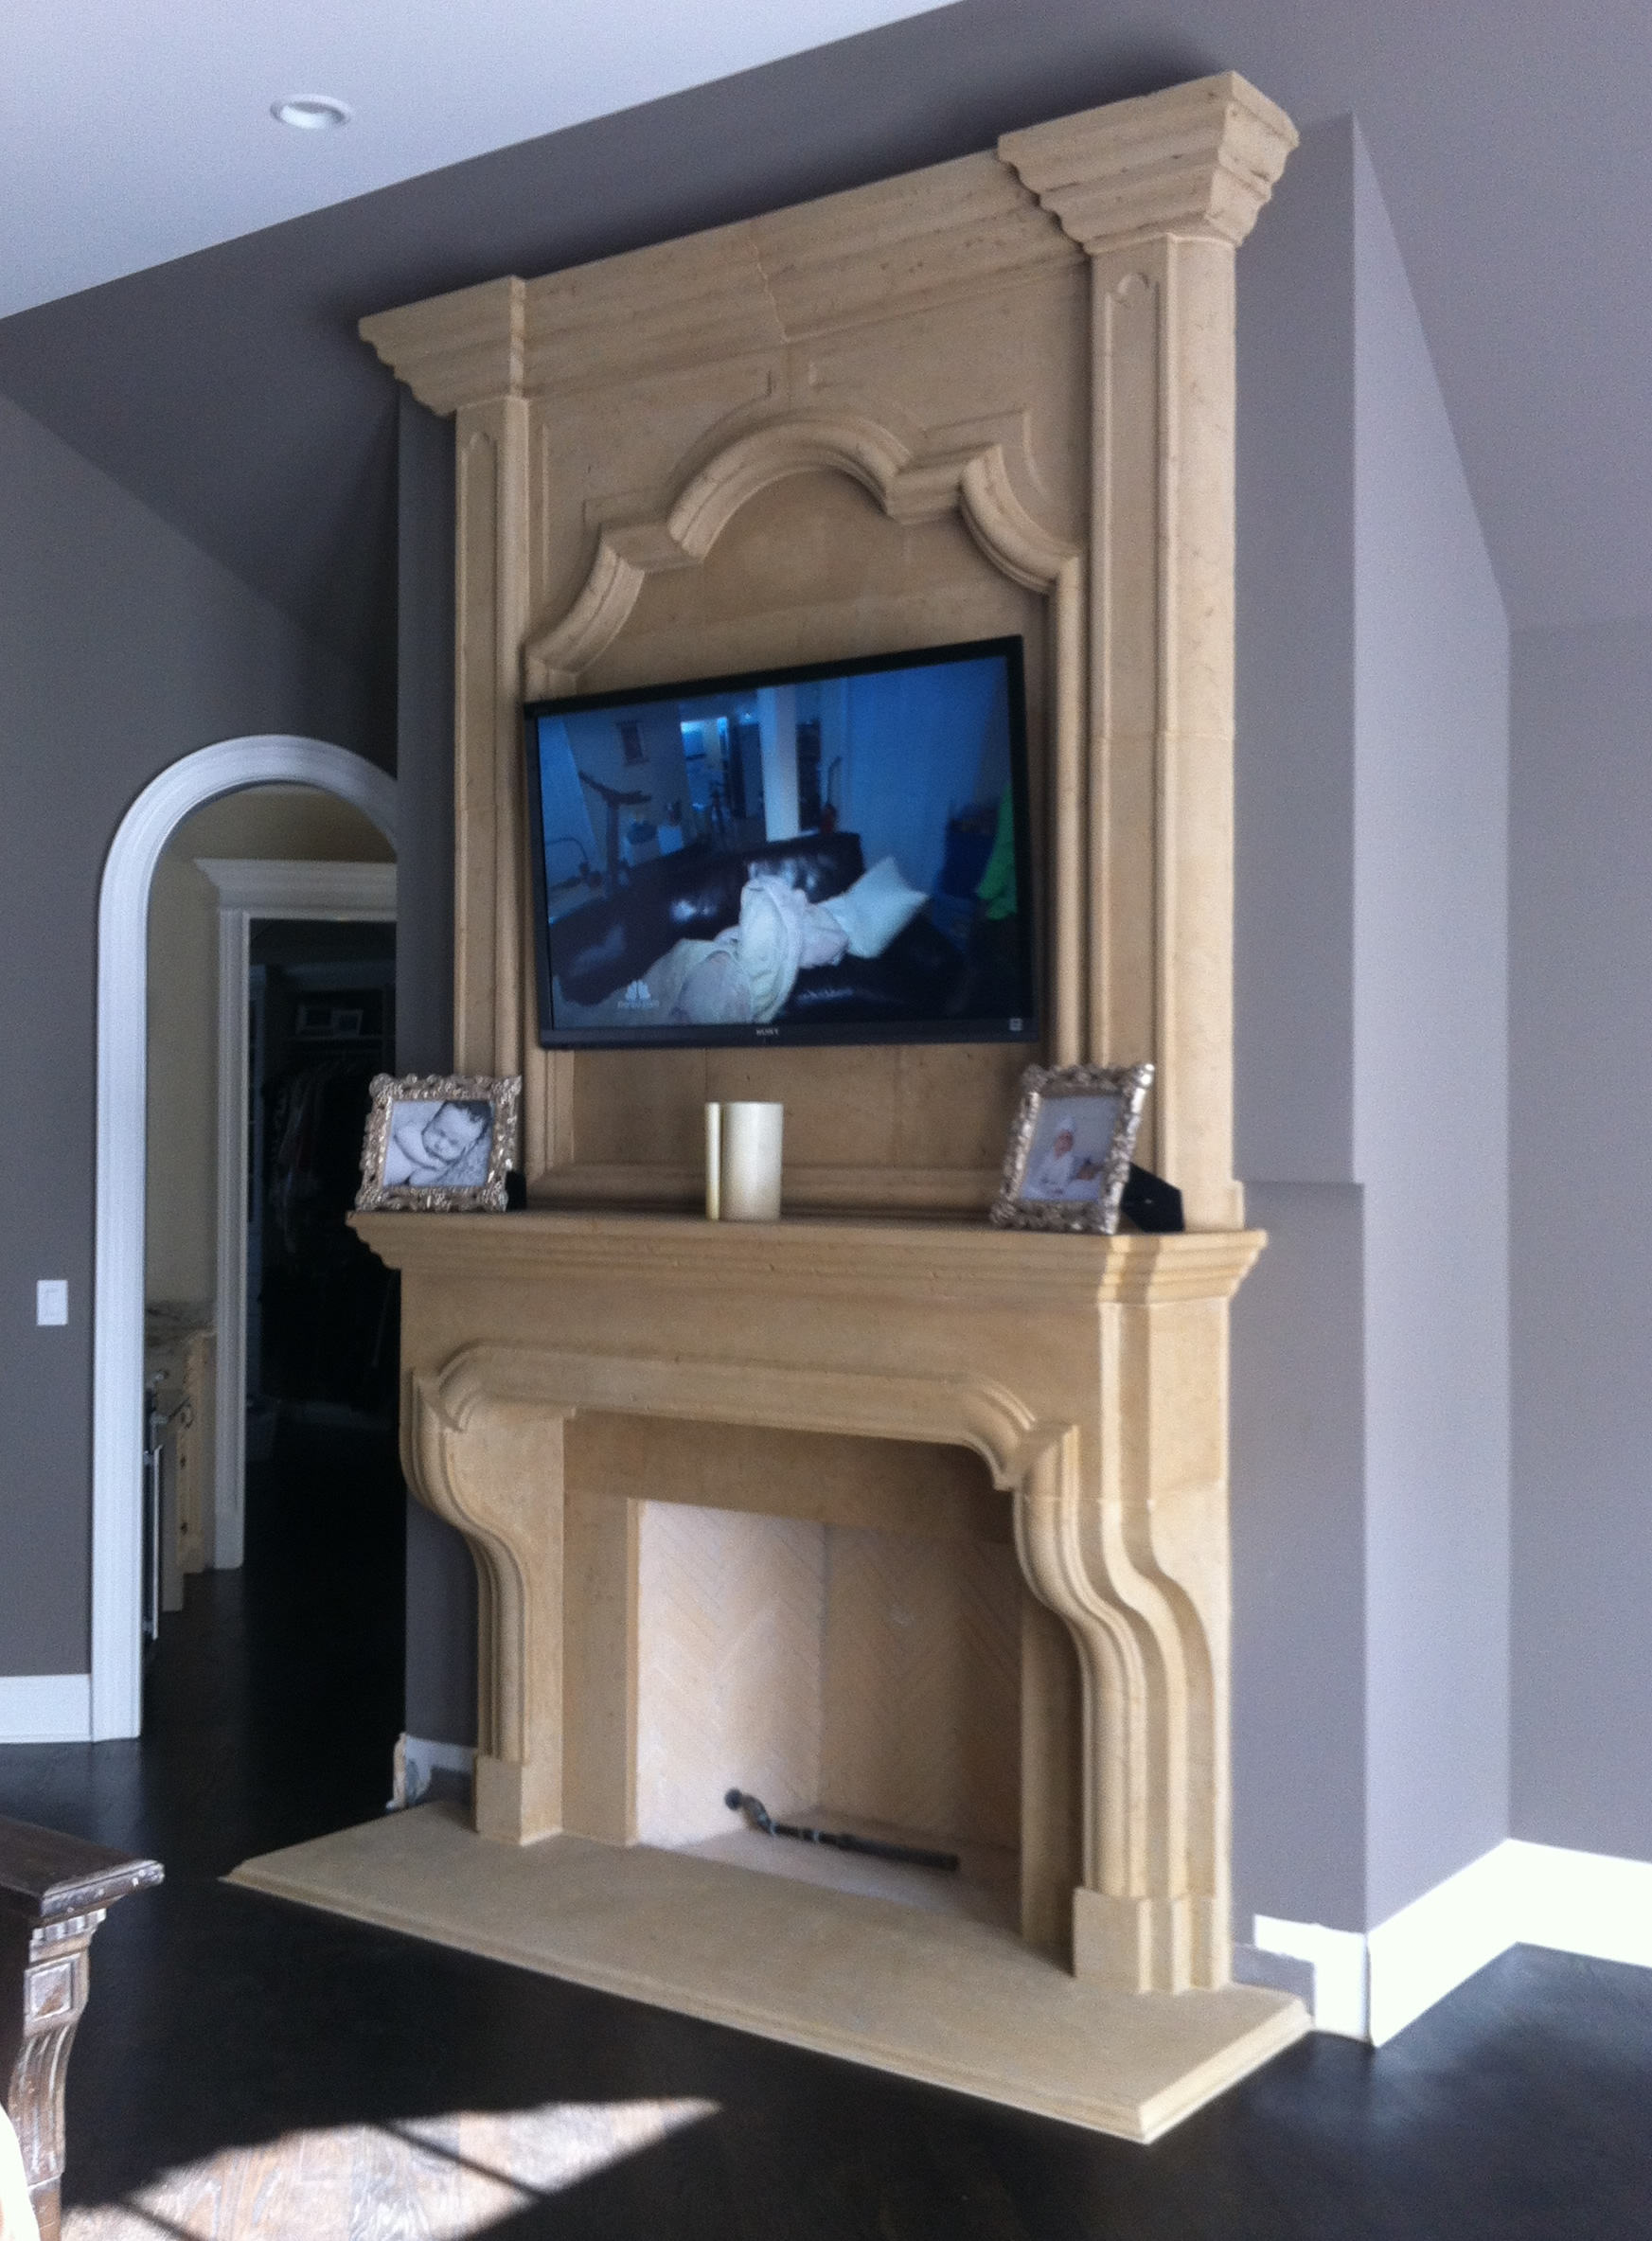 precast mantel omega installation wfurinture fireplace surround stone